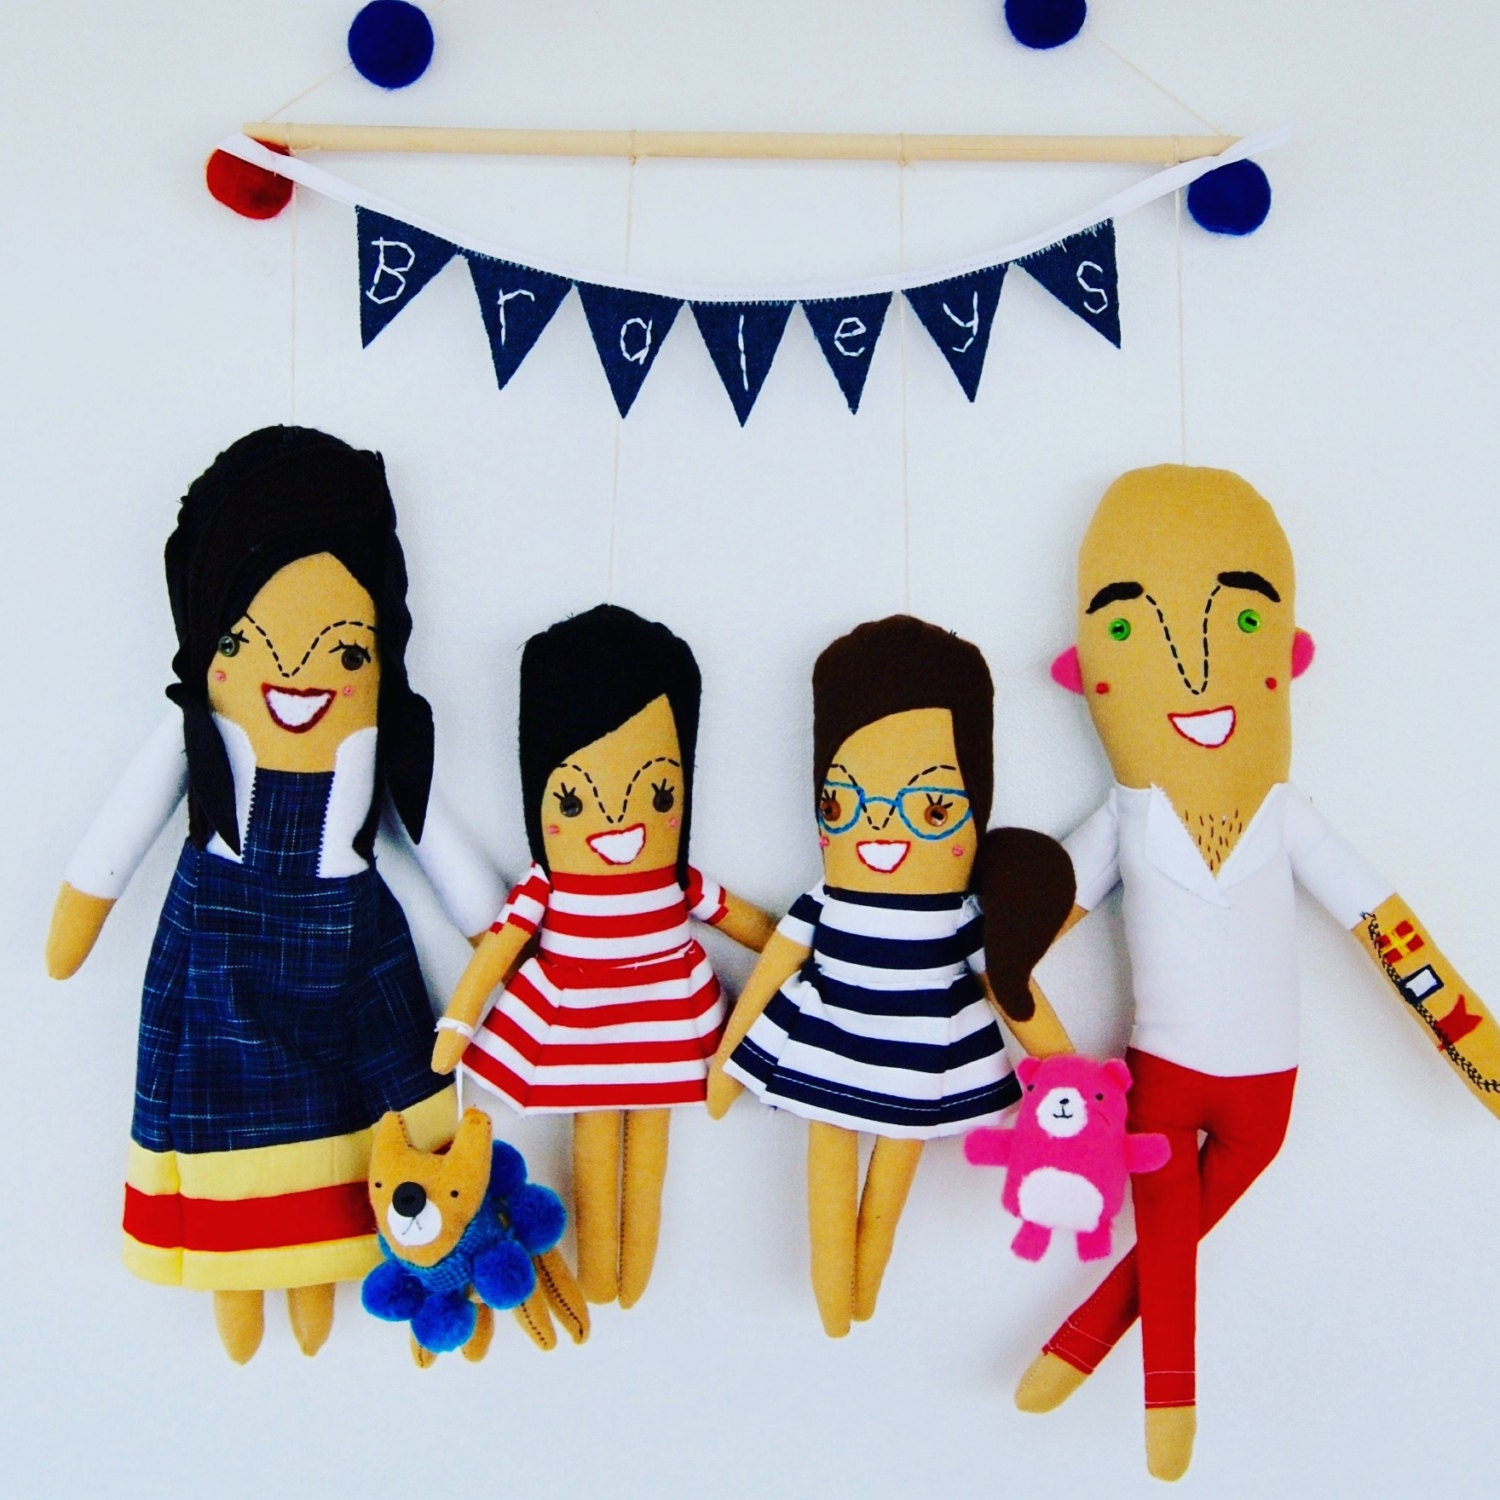 Design Your Own Swag Contest Ends Today: Wall Hanging Family Of Four Personalized Made To Order